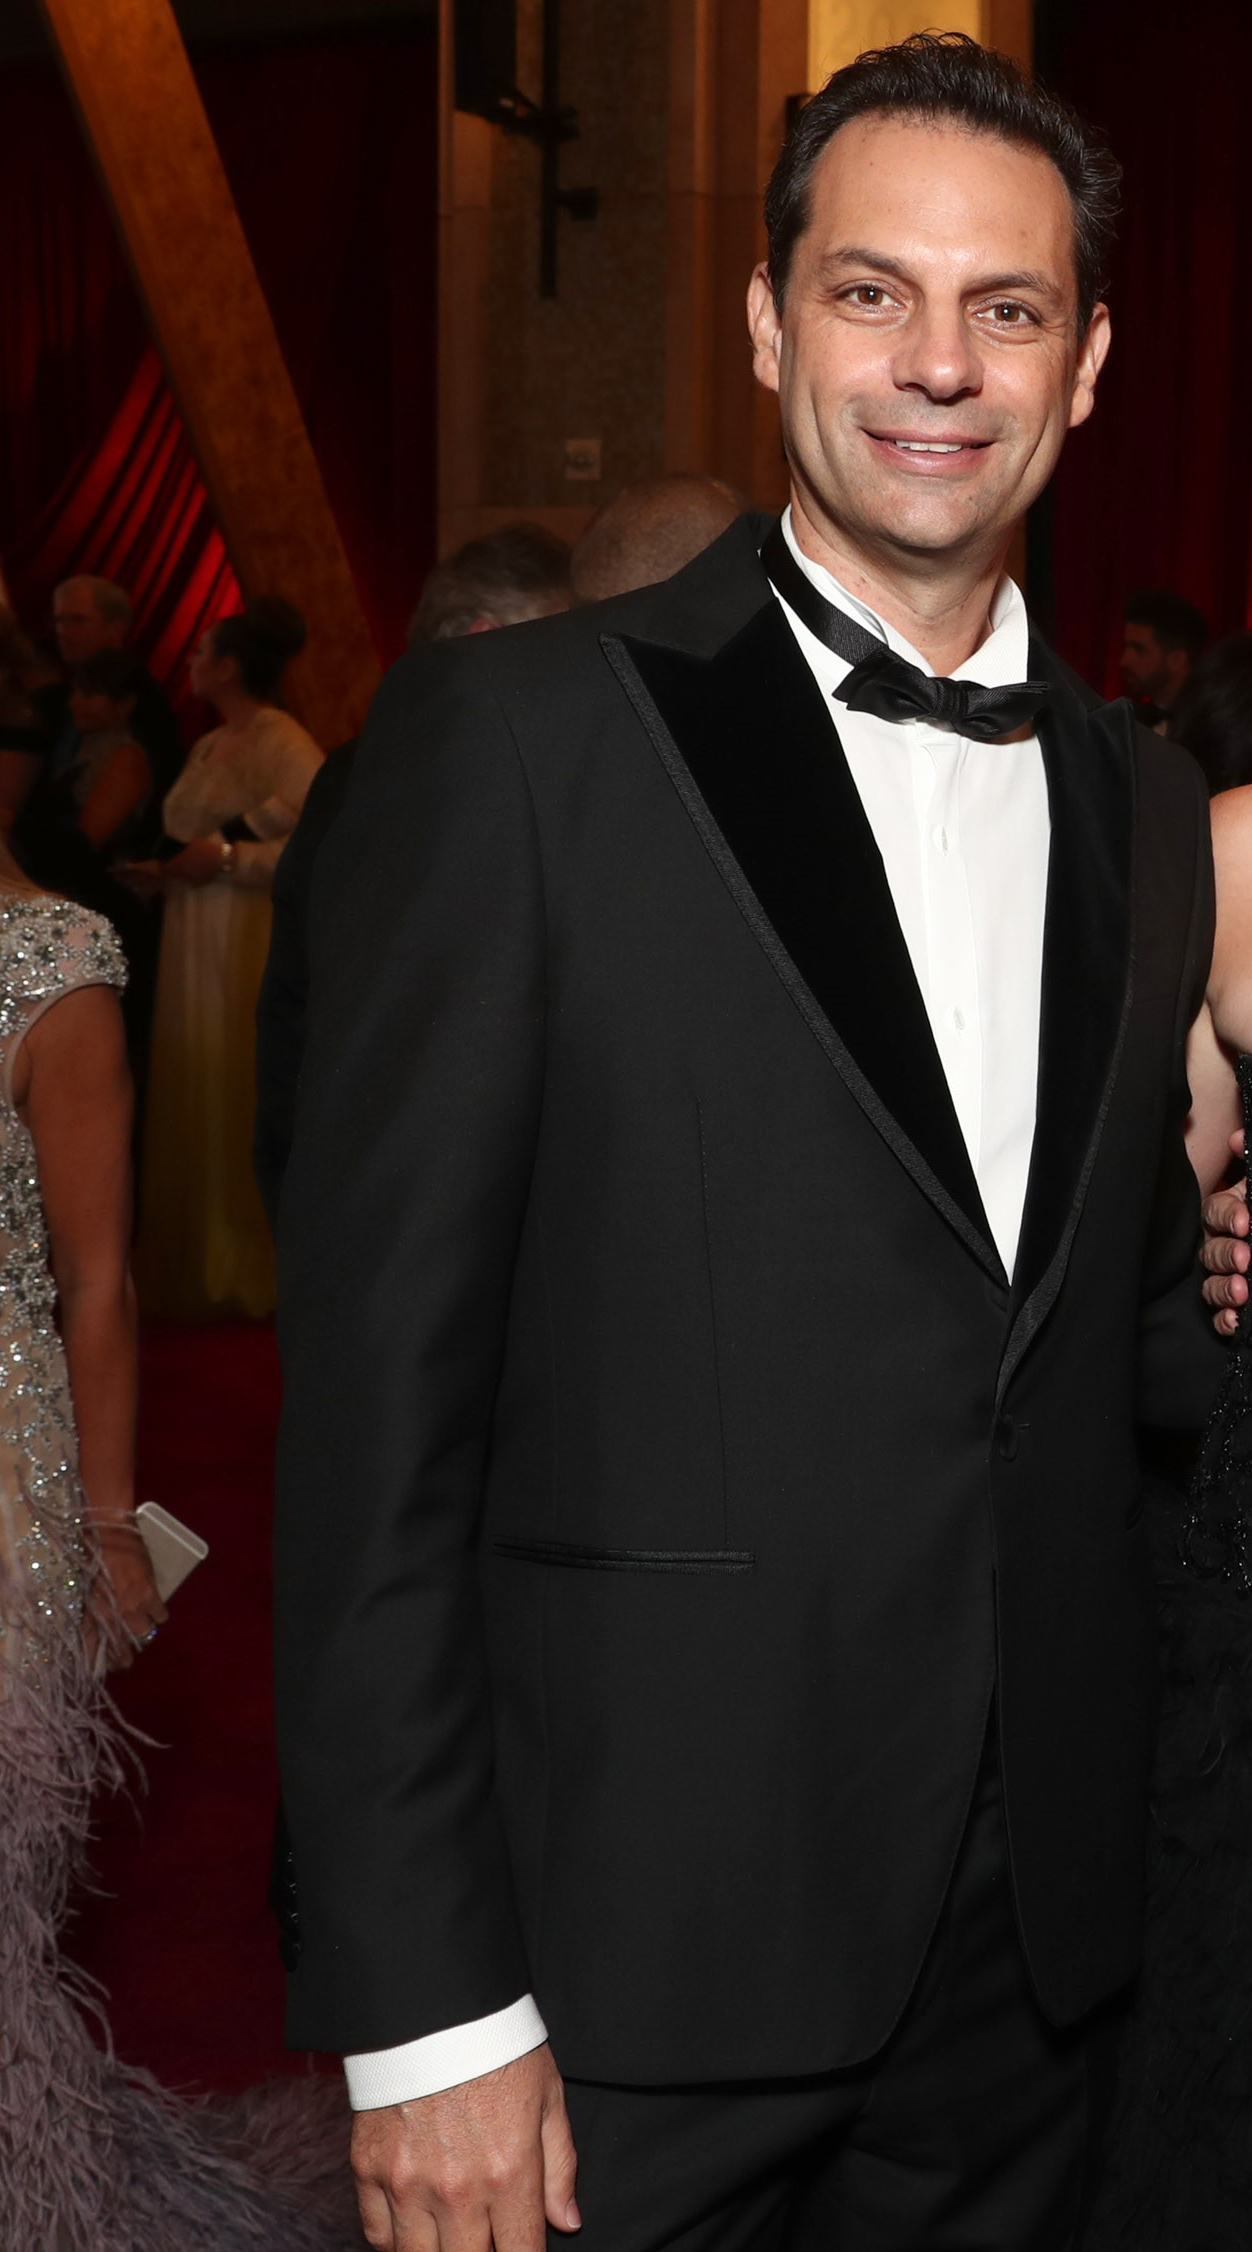 Emile Sherman at the Oscars, 2017